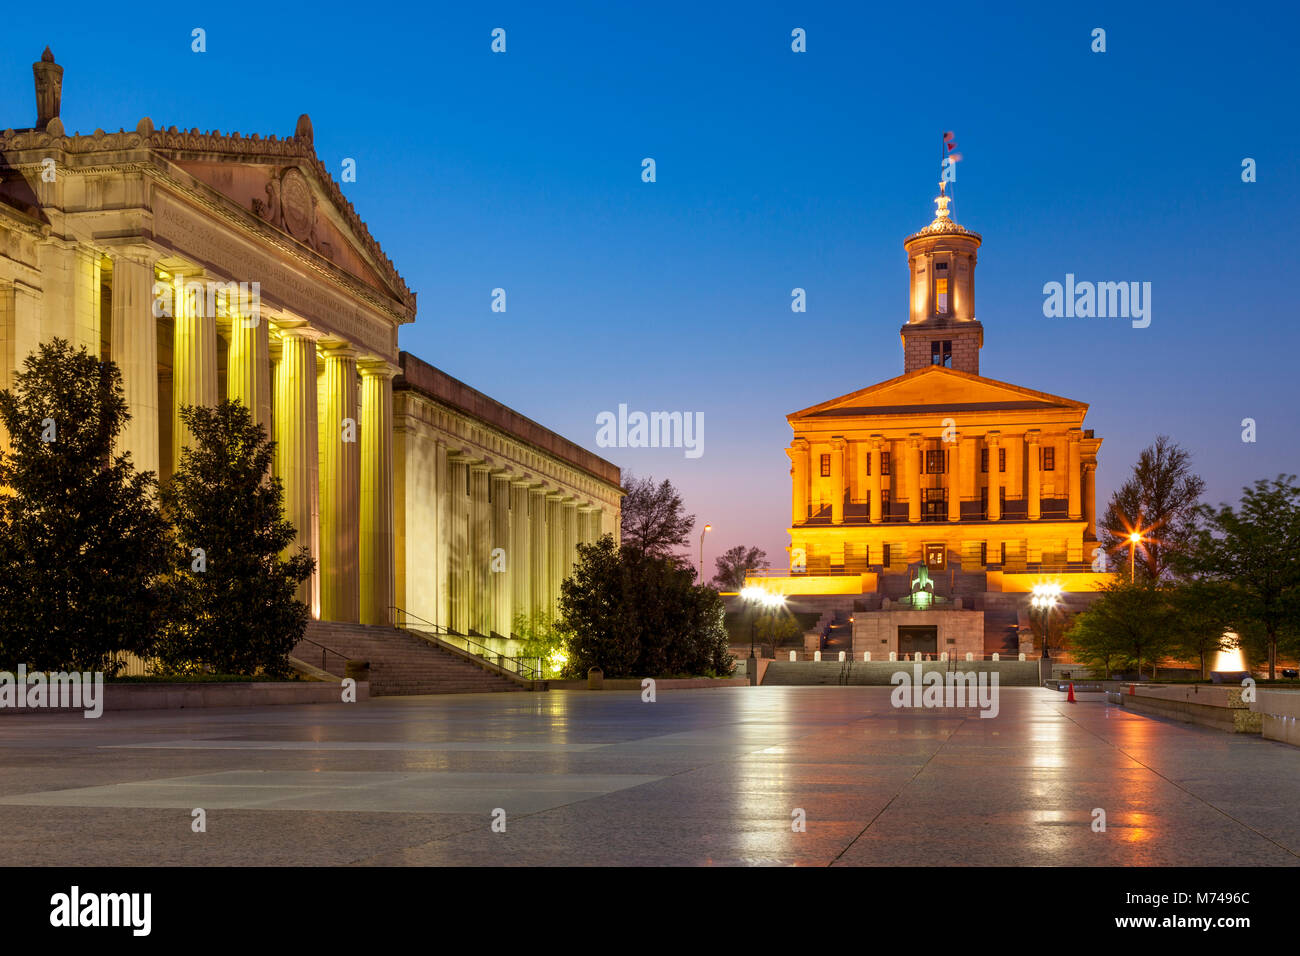 State Capitol Building and War Memorial Building in Legislative Plaza, Nashville, Tennessee, USA - Stock Image